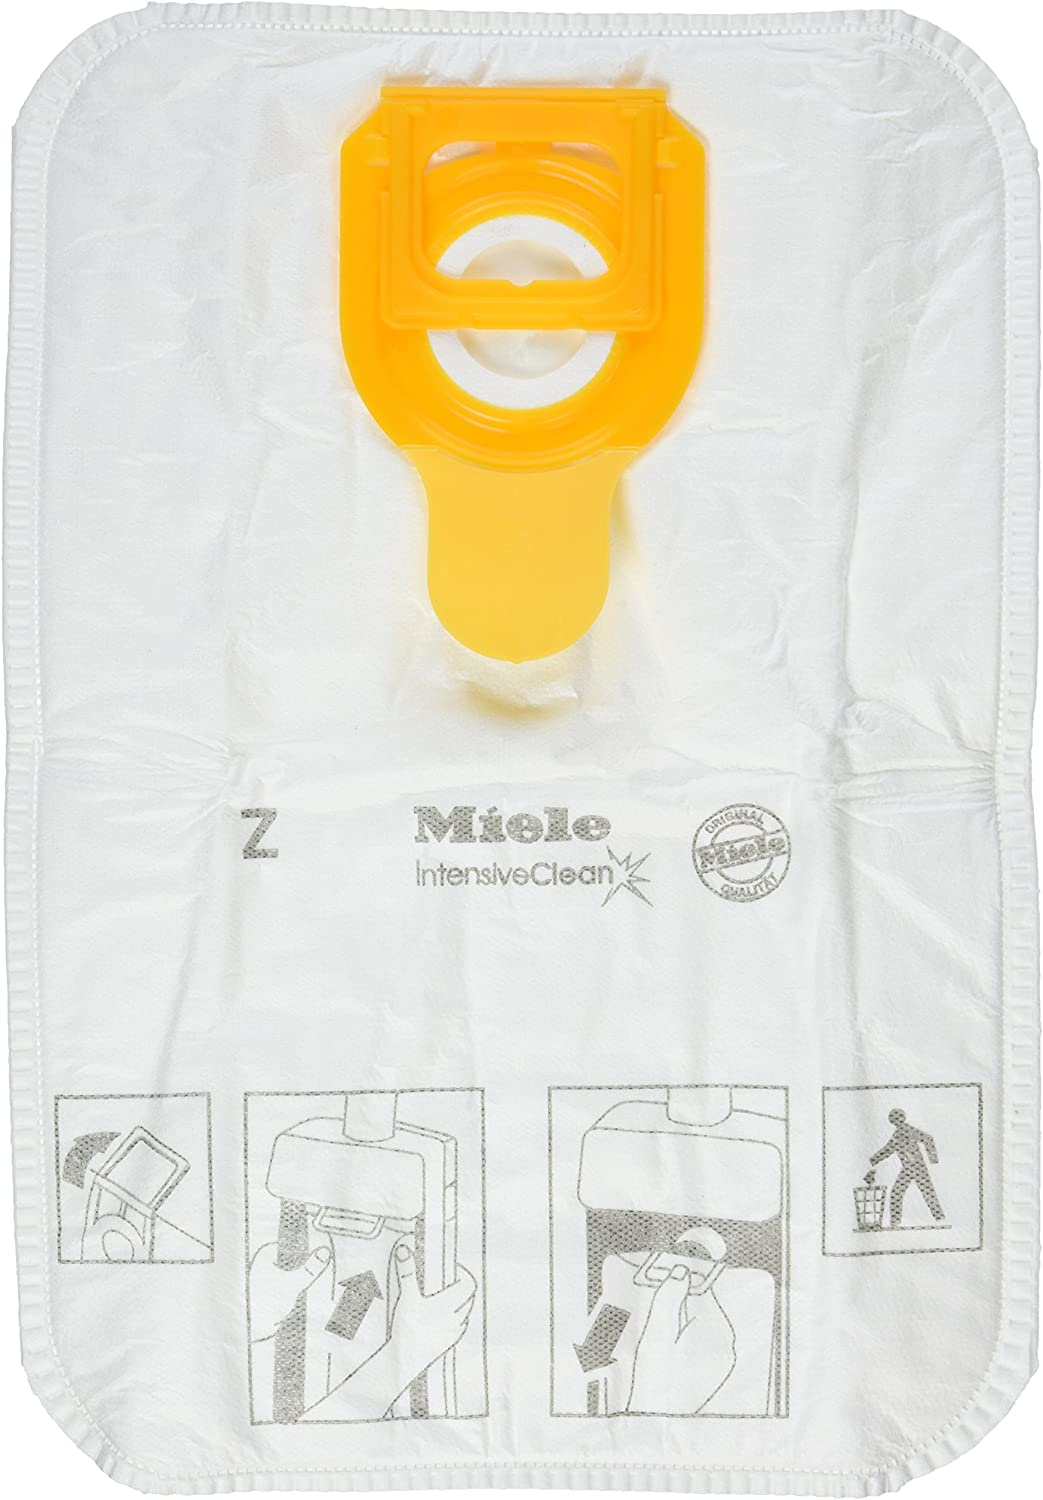 S170 i Miele Type Z Intensive Clean FilterBags S185,White